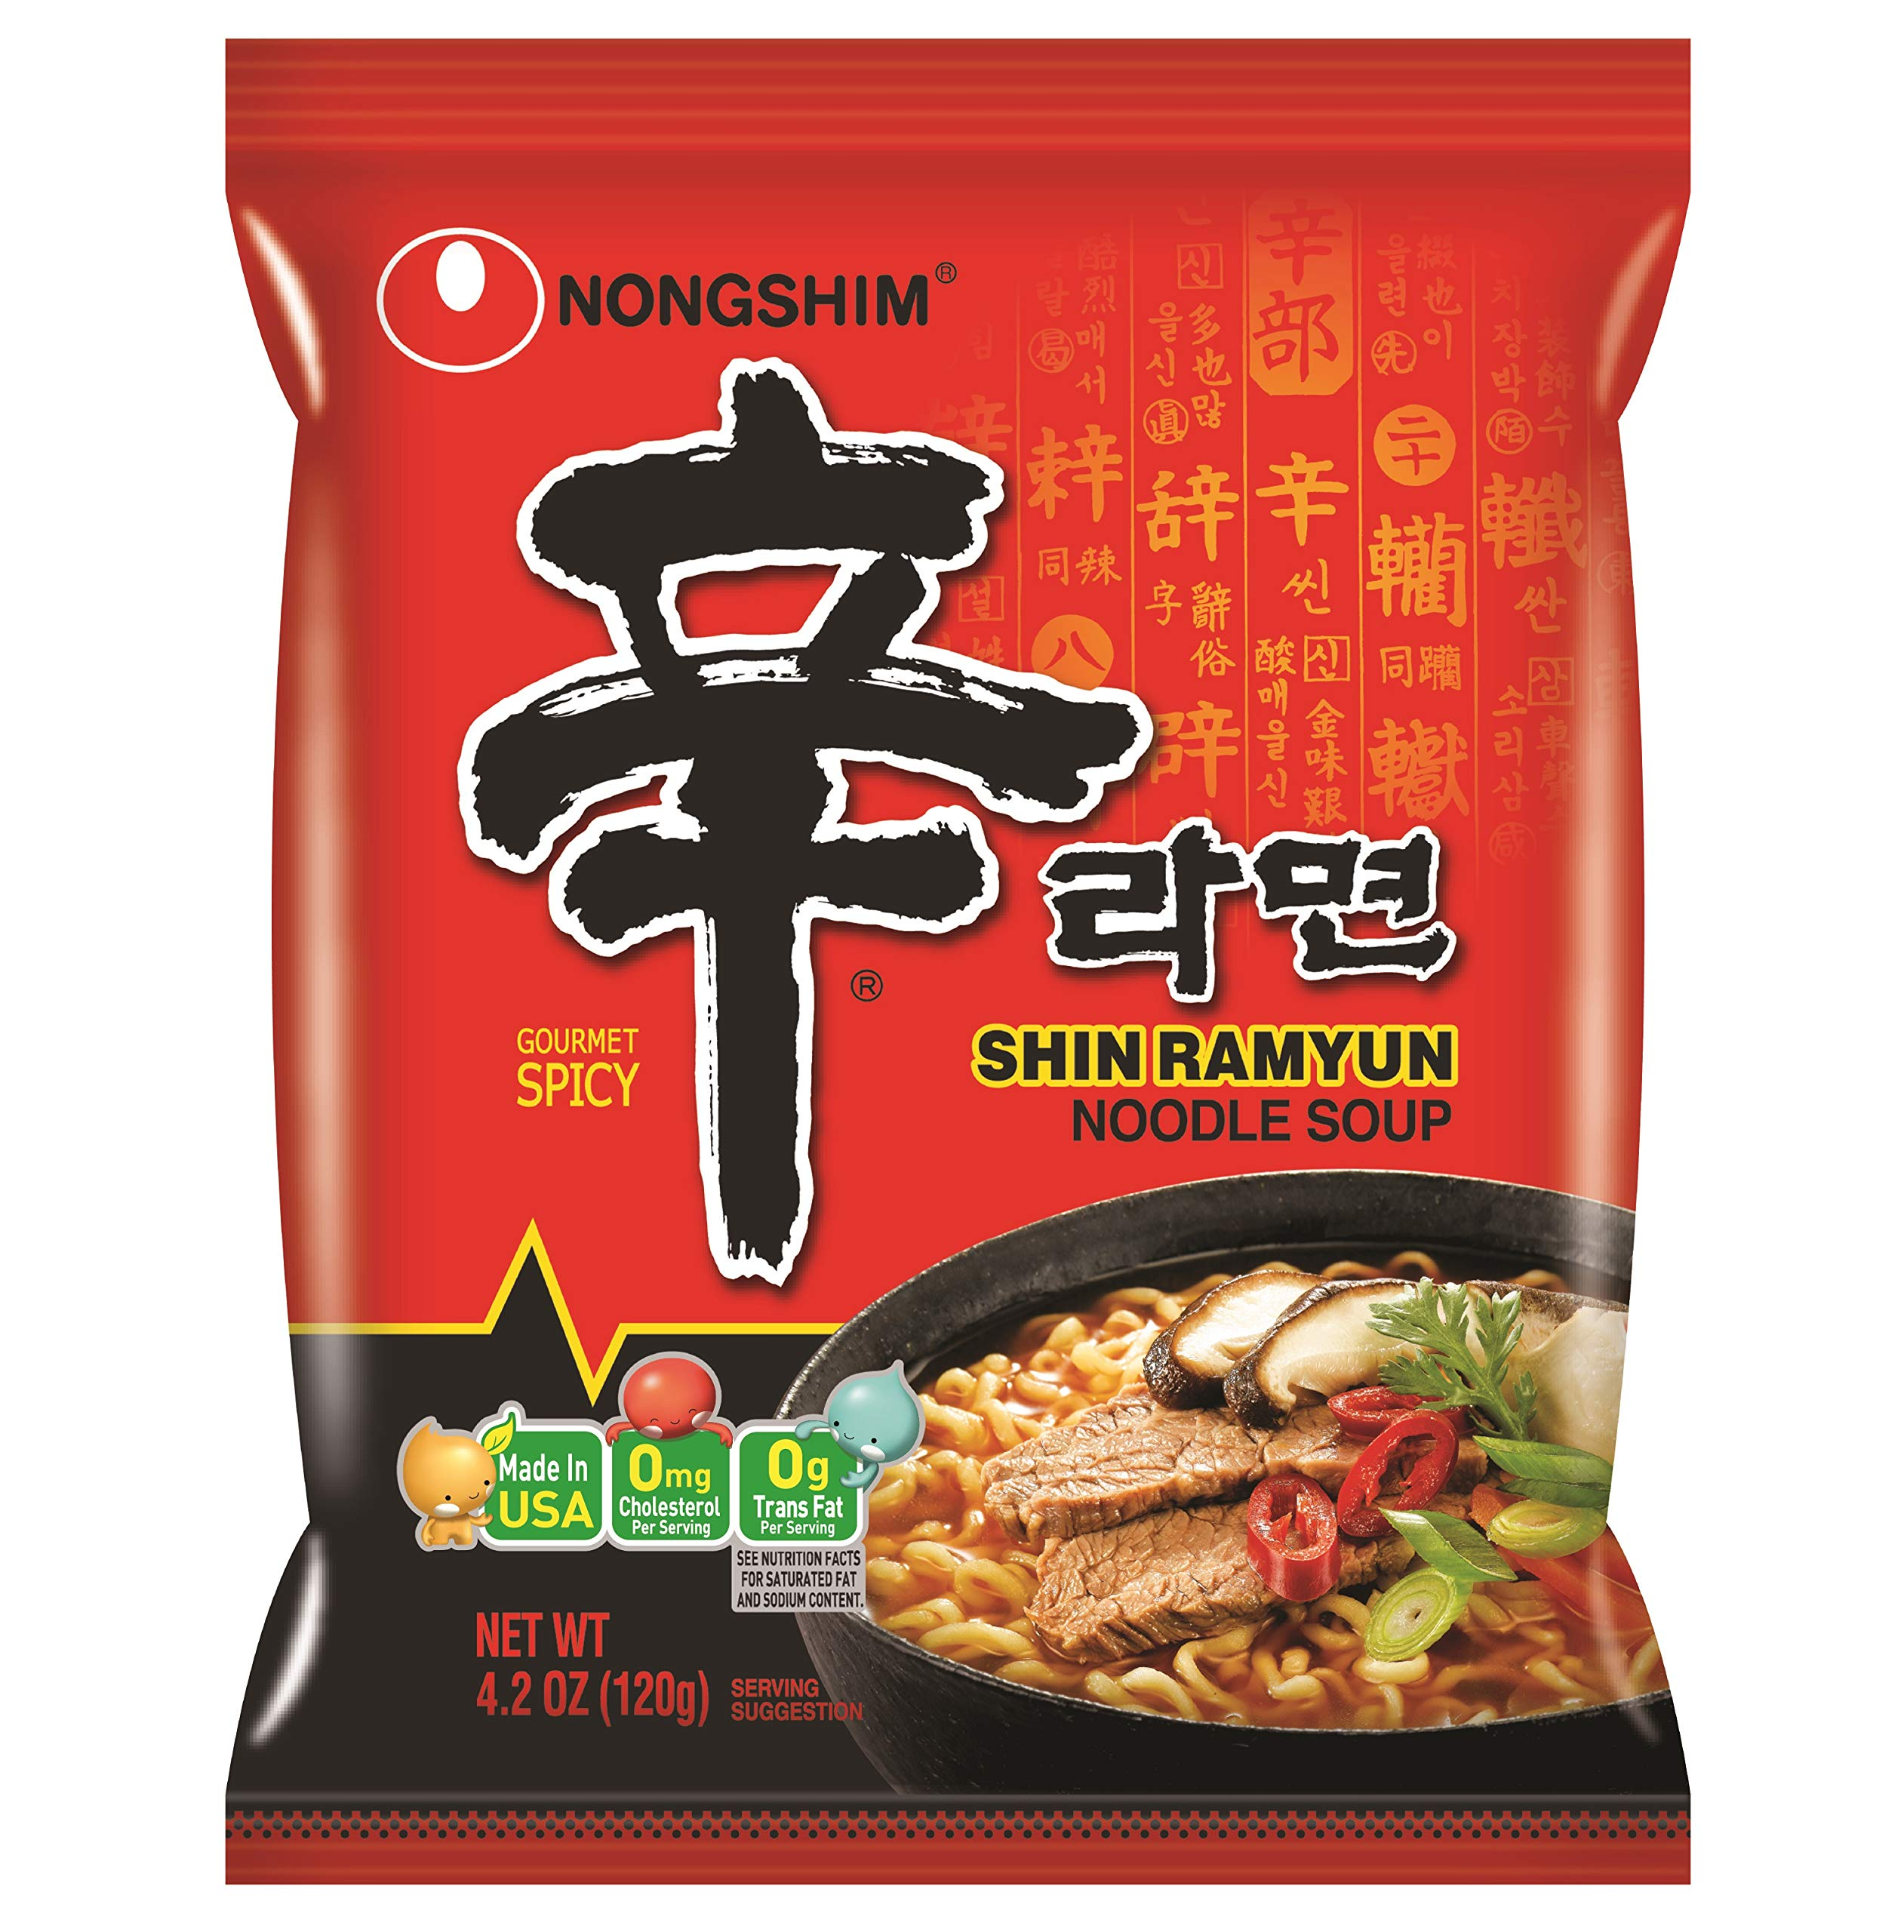 NongShim Shin Ramyun Noodle Soup, Gourmet Spicy, 4.2 Ounce (Pack of 20) by Nongshim